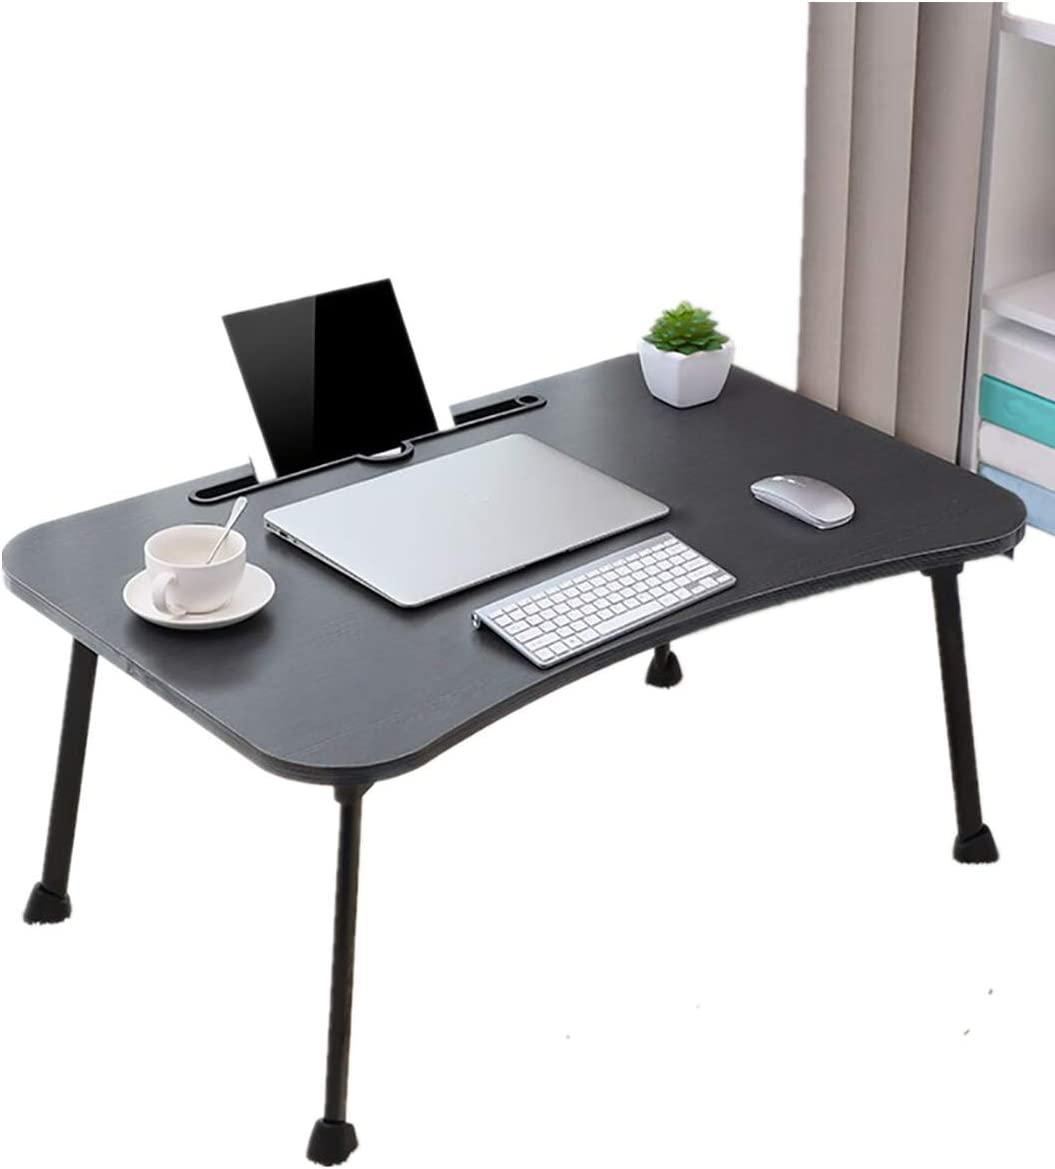 Amazon coupon code for Foldable Laptop Bed Table